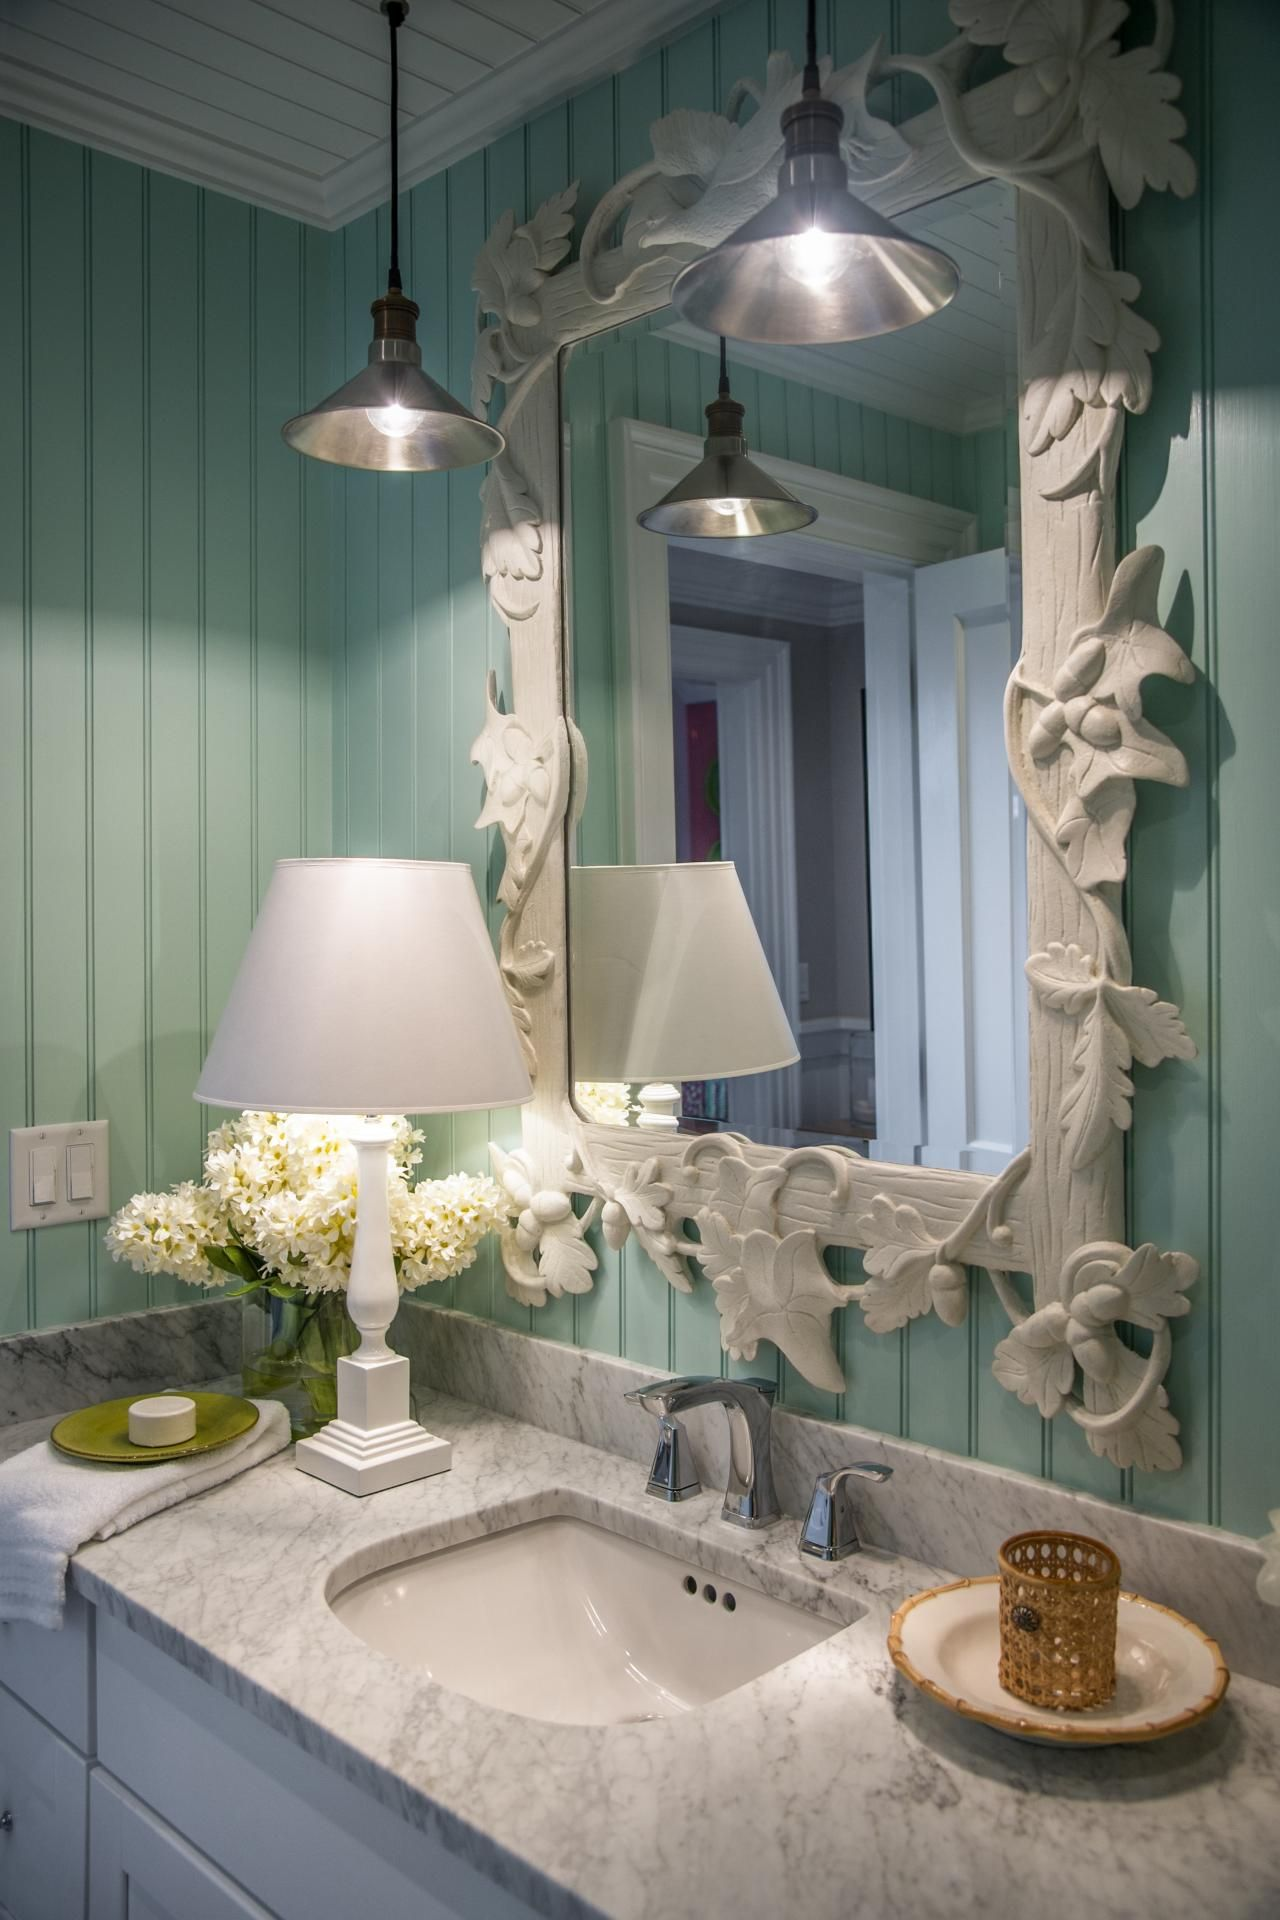 Bathroom ideas bathroom mirror ideas bathroom bathroomideas - Dream Home 2015 Kids Bathroom Kid Bathroomsbathroom Mirrorsbathroom Ideasbathroom